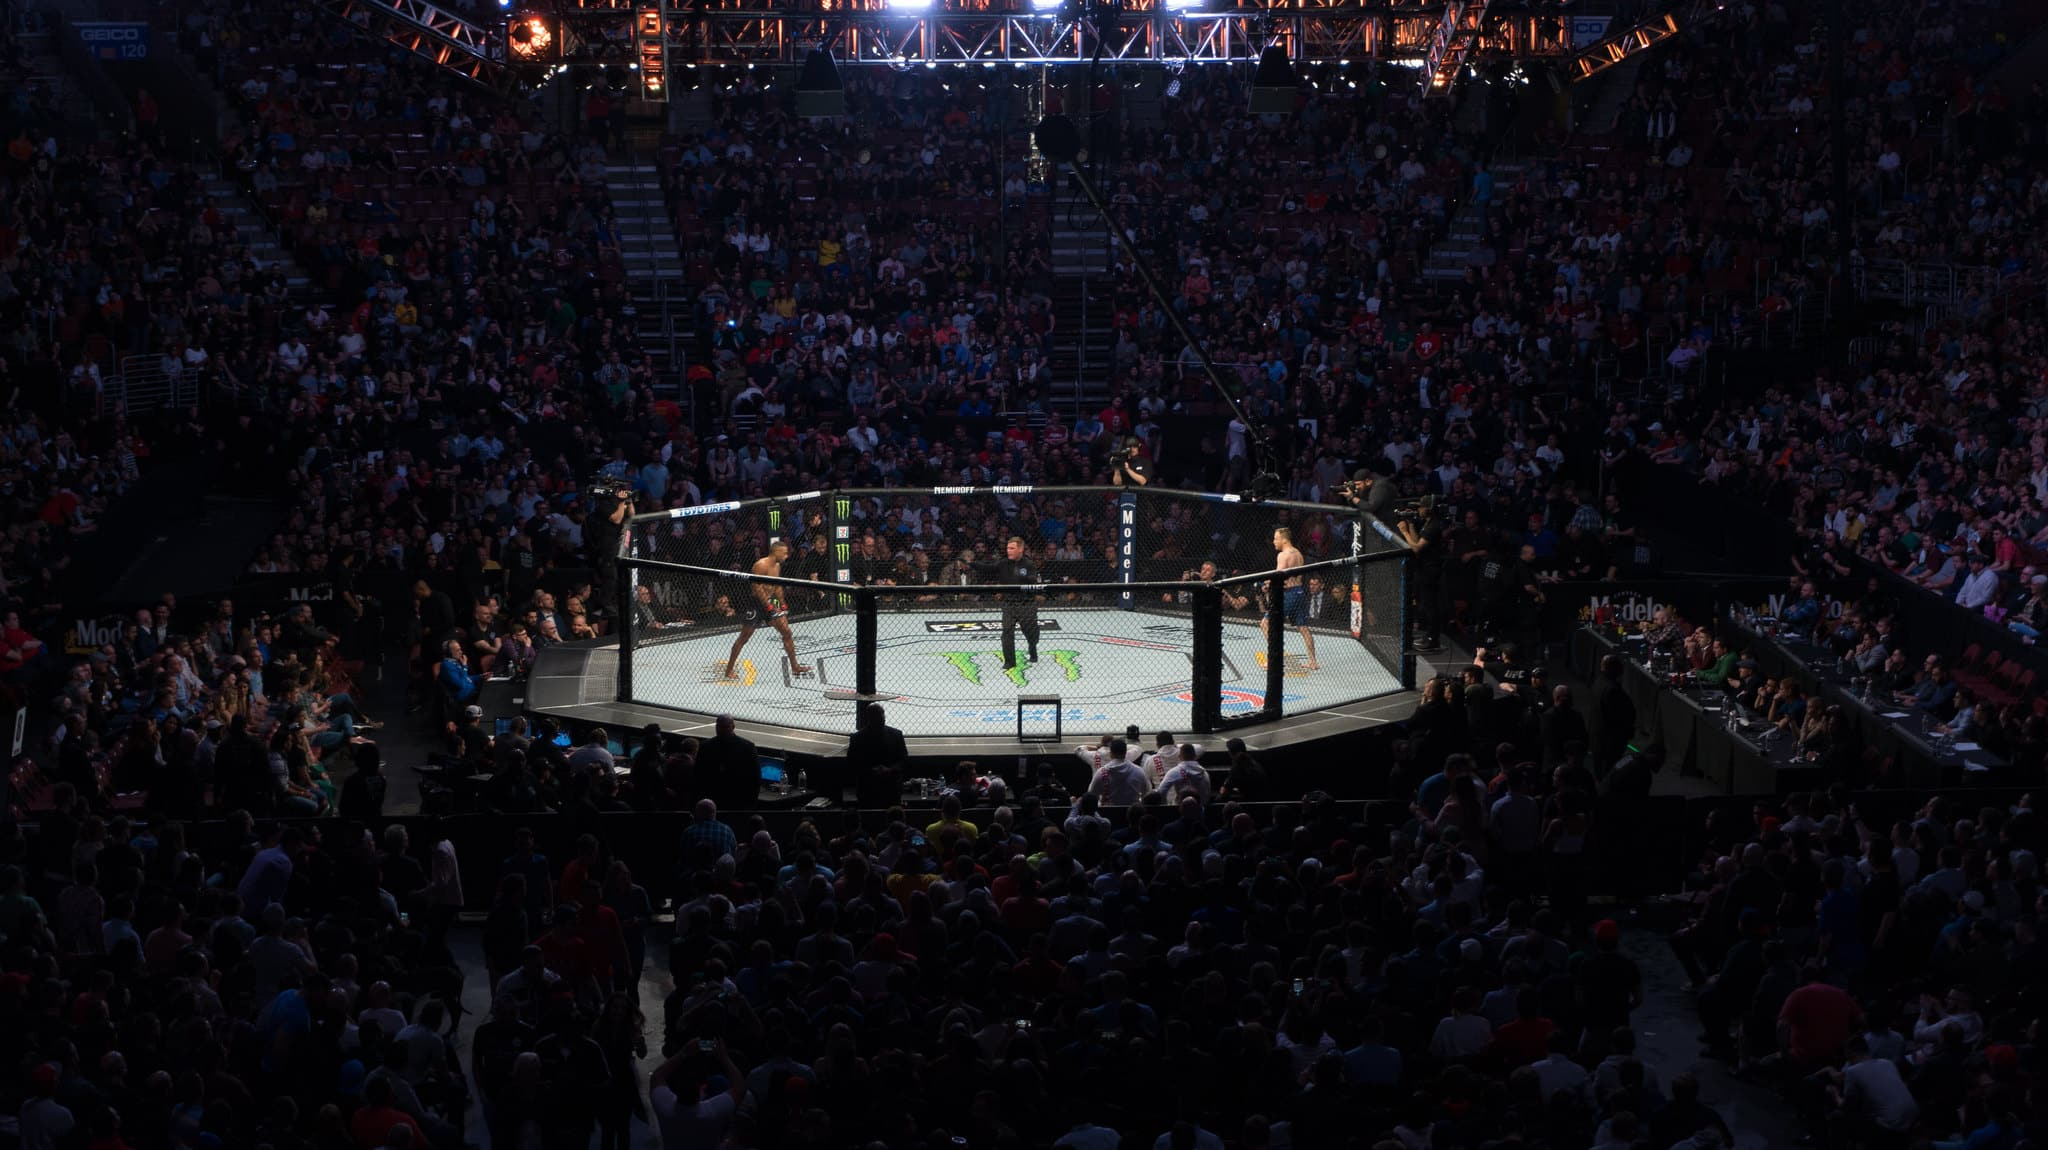 Alistair Overeem Better Than Augusto Sakai, Earns Fourth Win in Previous Five Matches